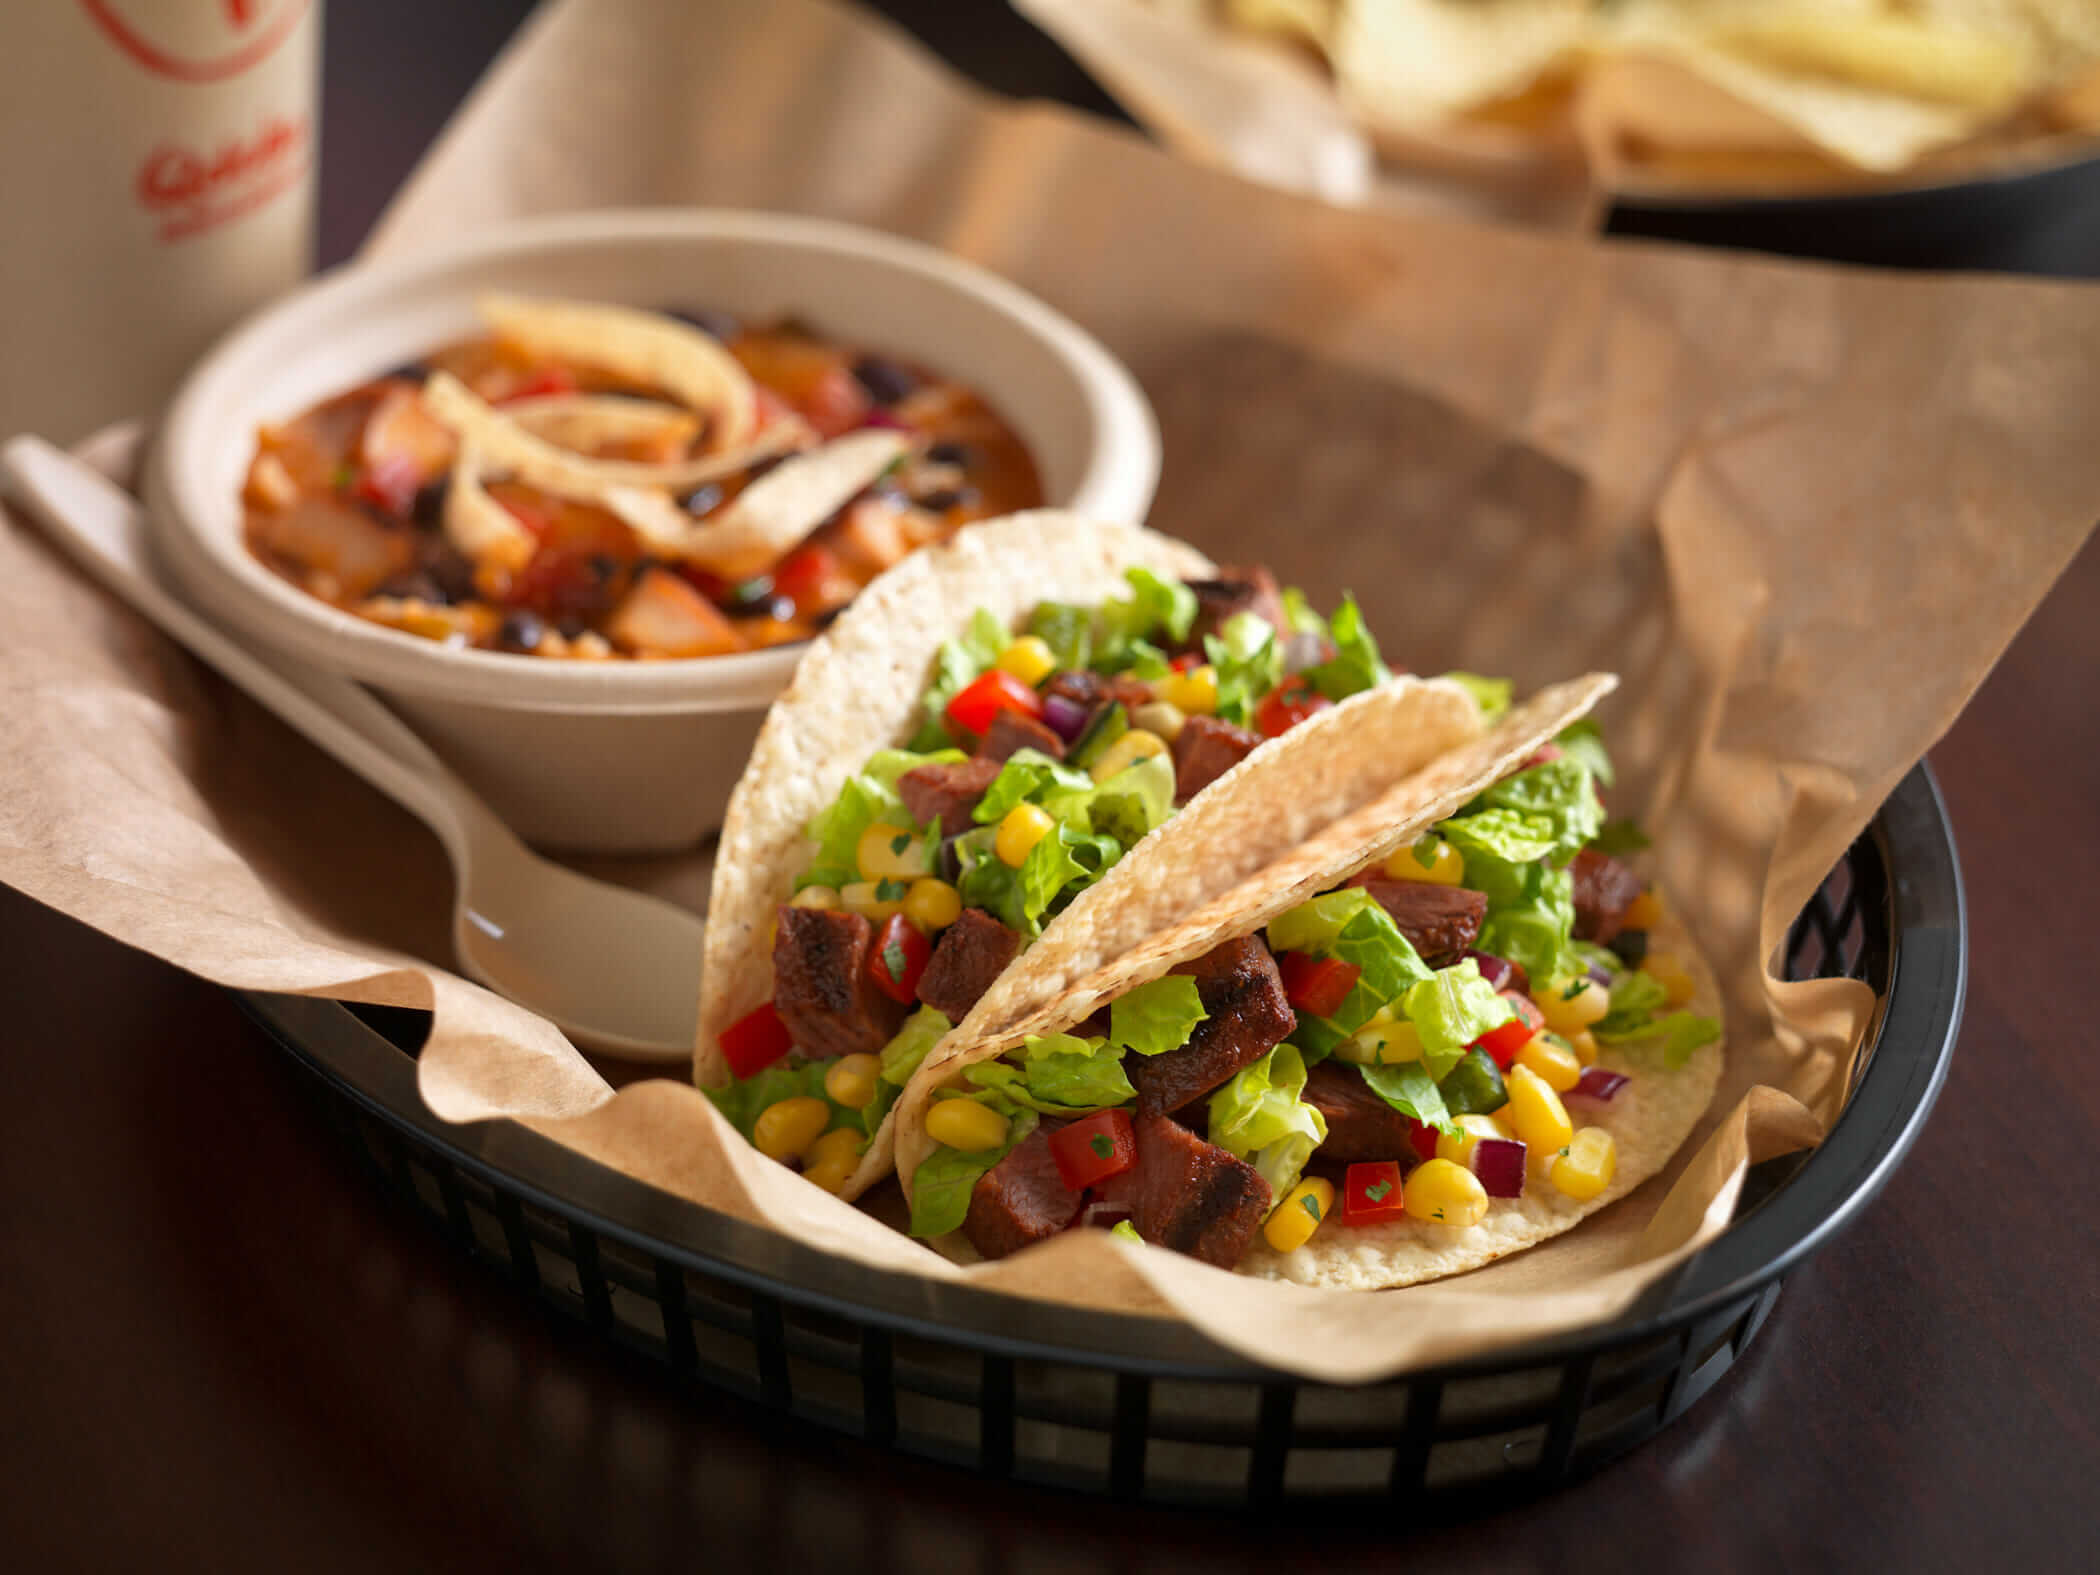 Qdoba is one of the fast food restaurants Open On Thanksgiving